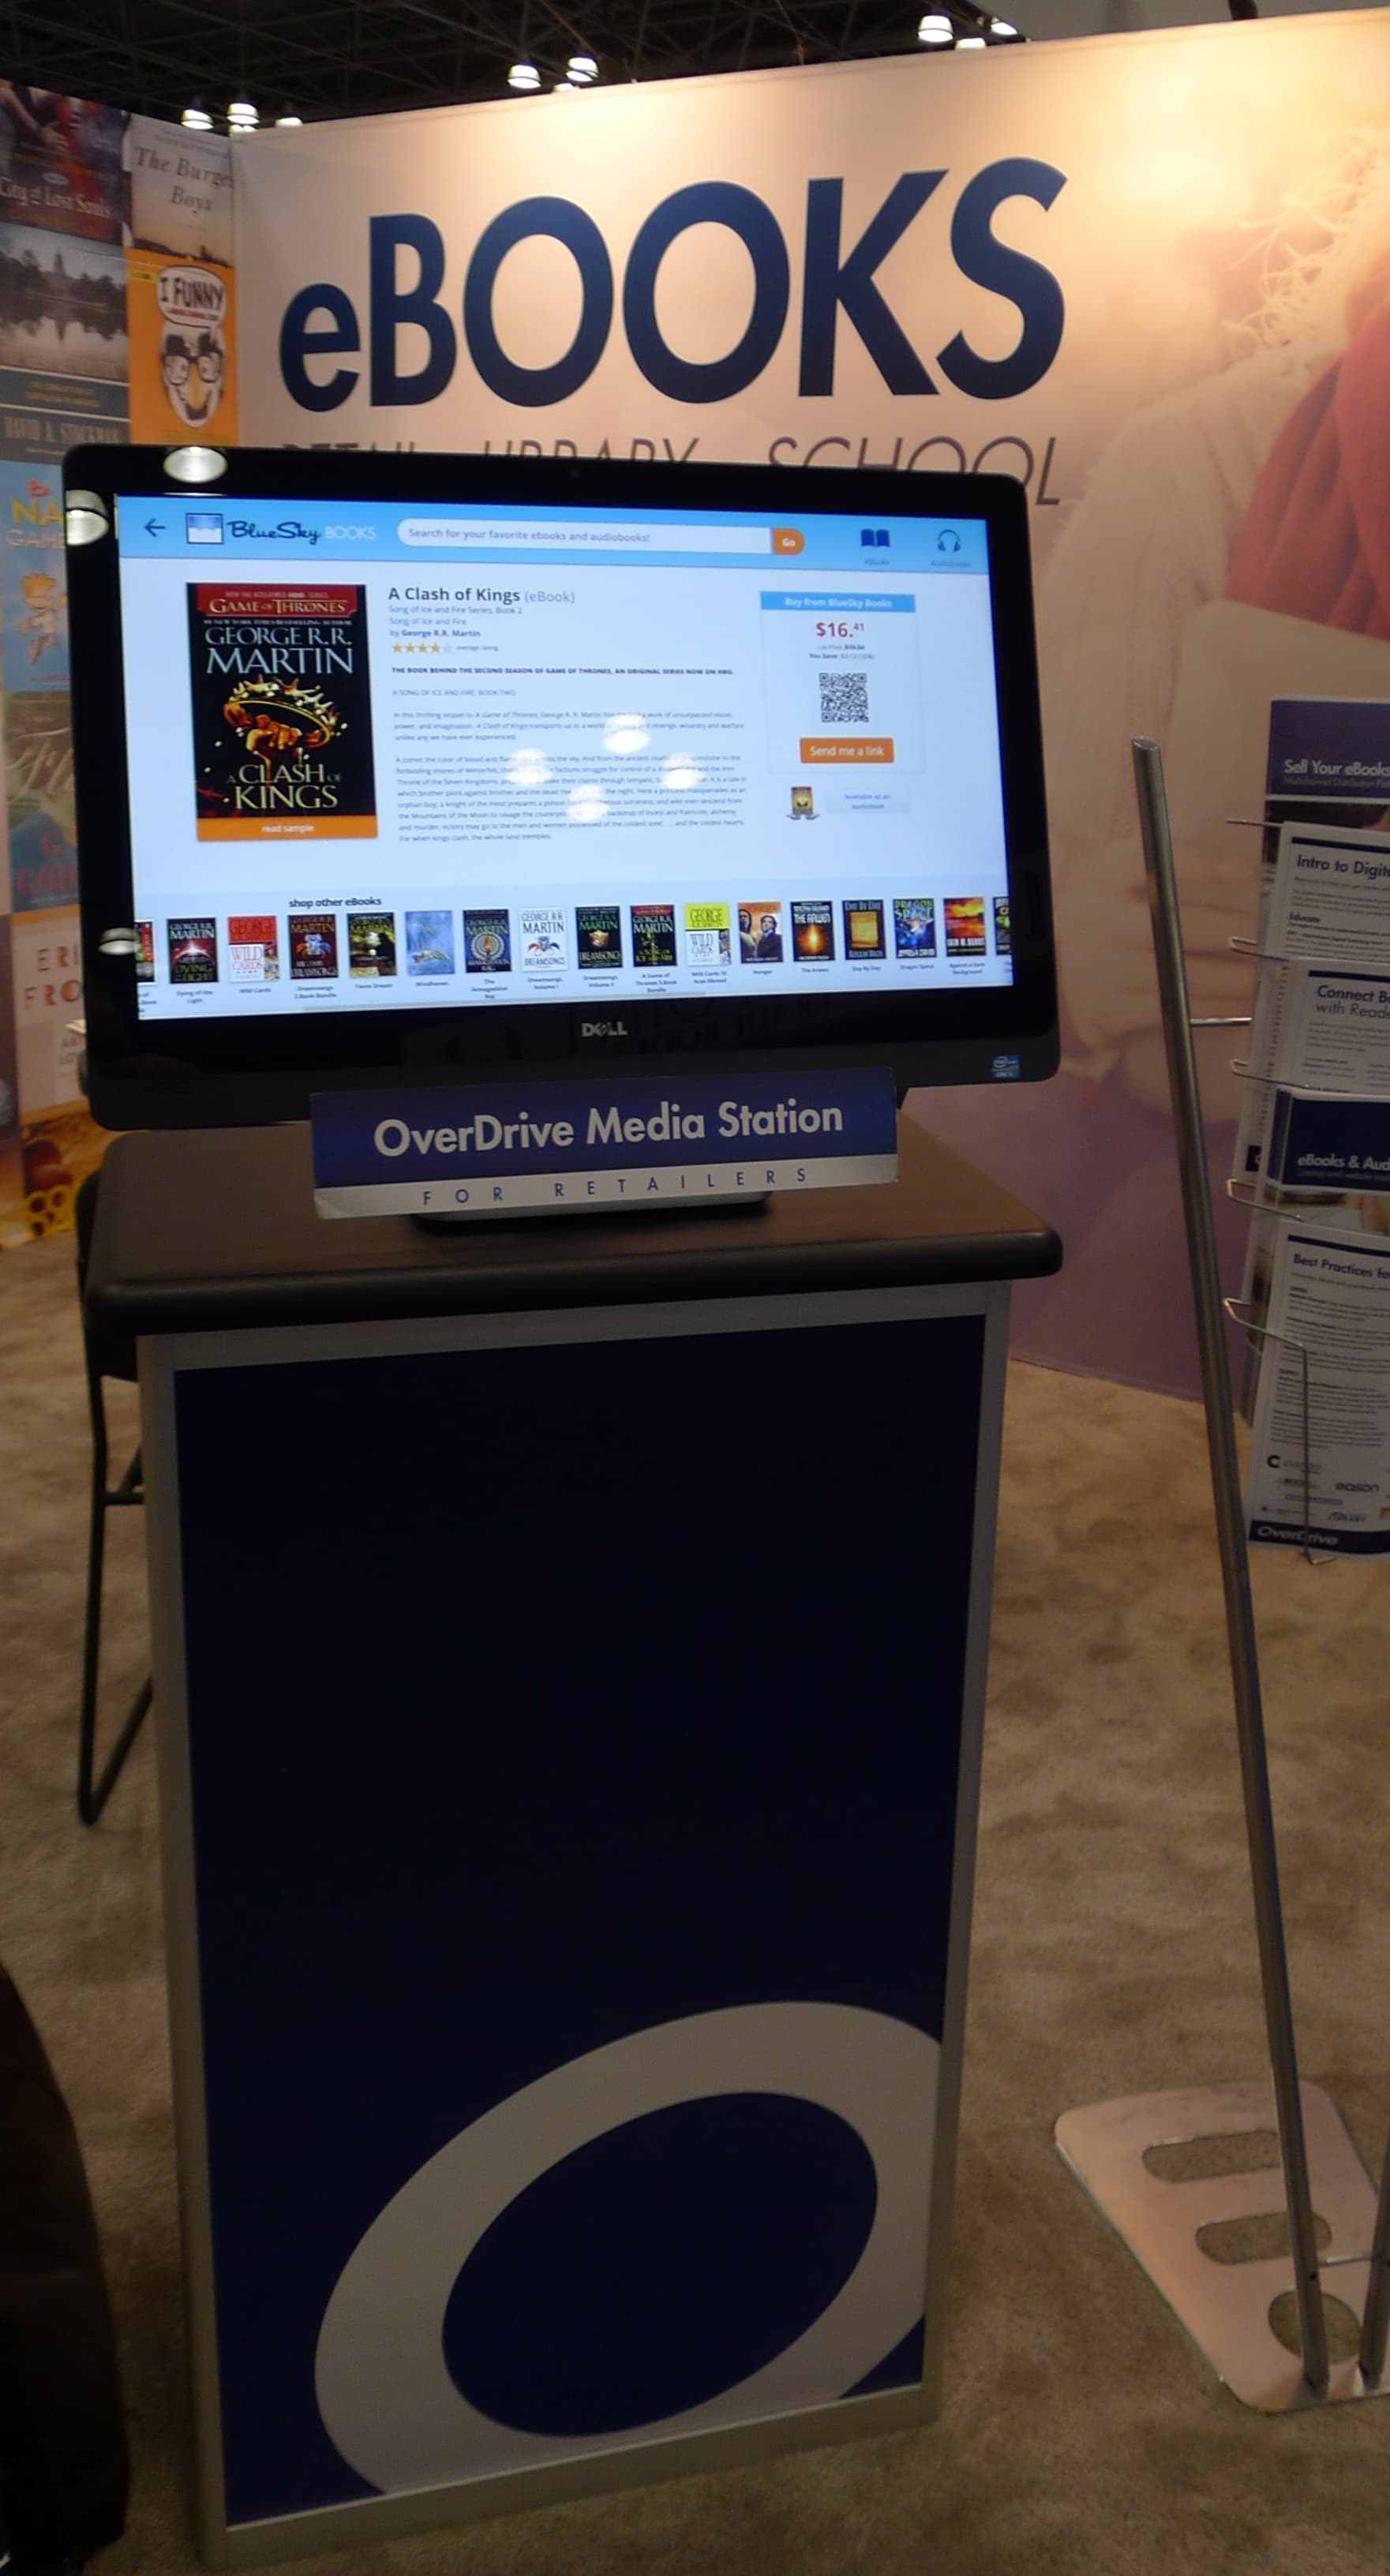 Hands On With OverDrive Retail eBook Kiosk | The Digital Reader